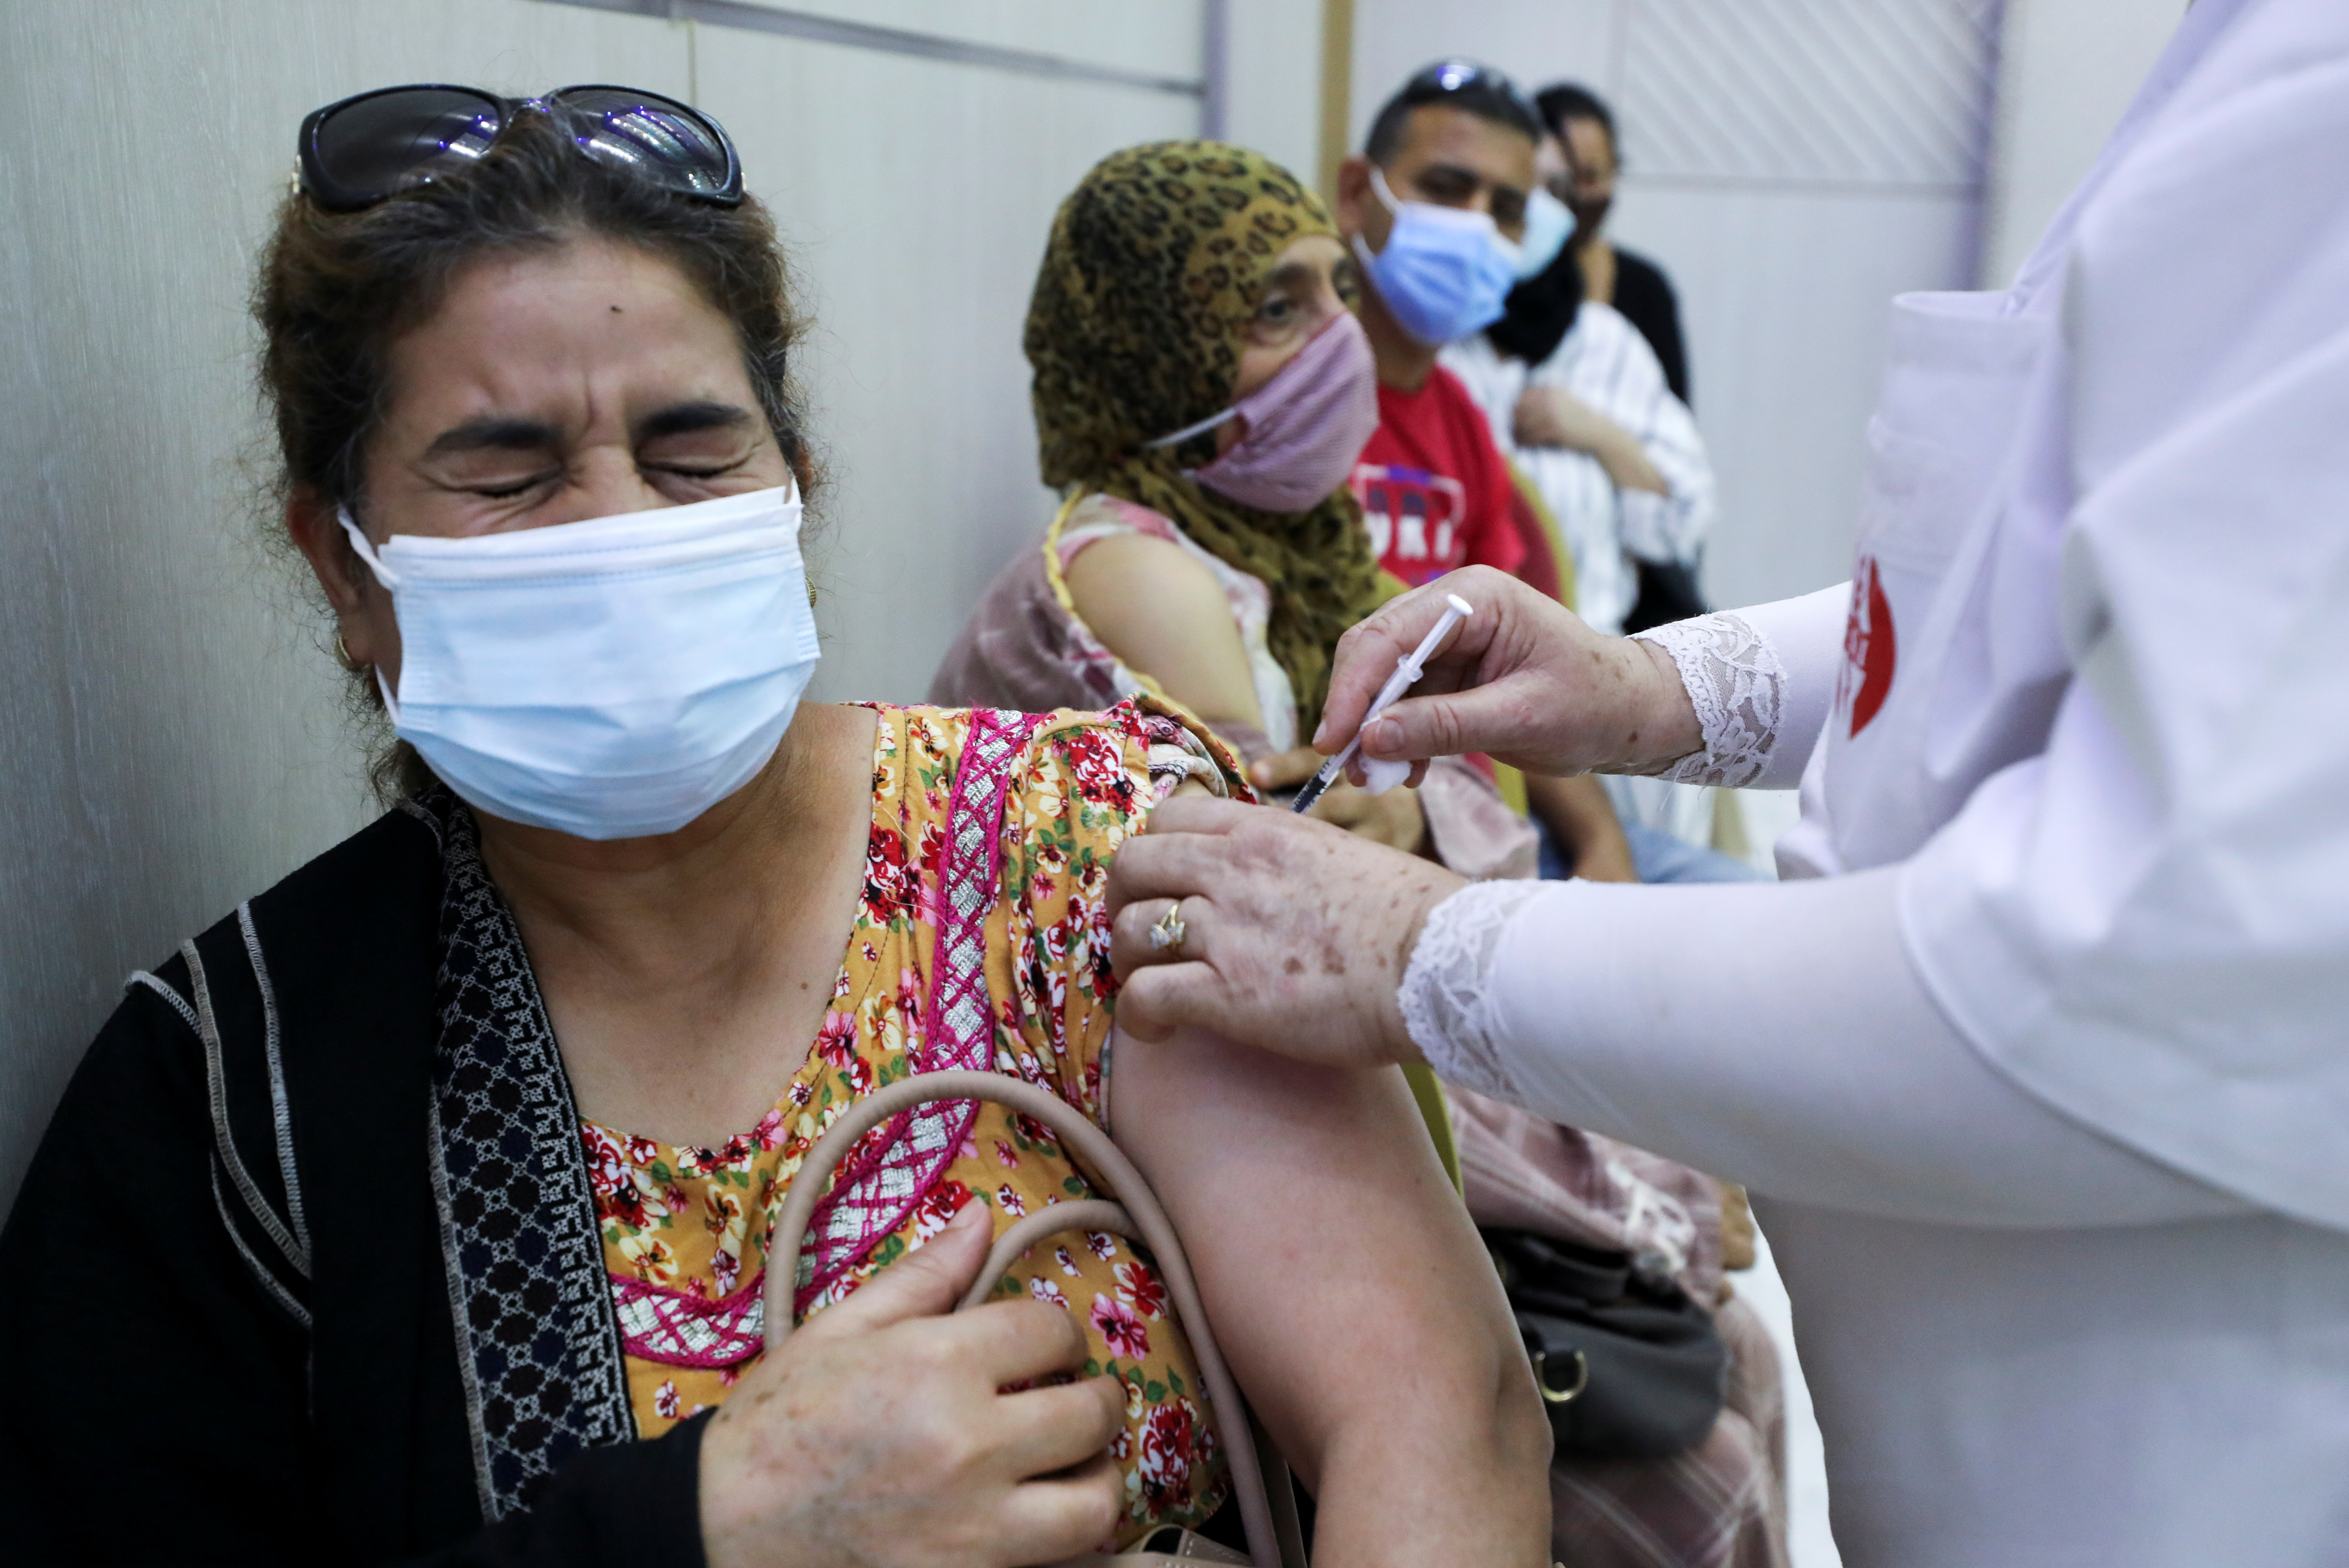 A woman receives the COVID-19 vaccine at a vaccination center in Tunis, Tunisia. REUTERS/Ammar Awad